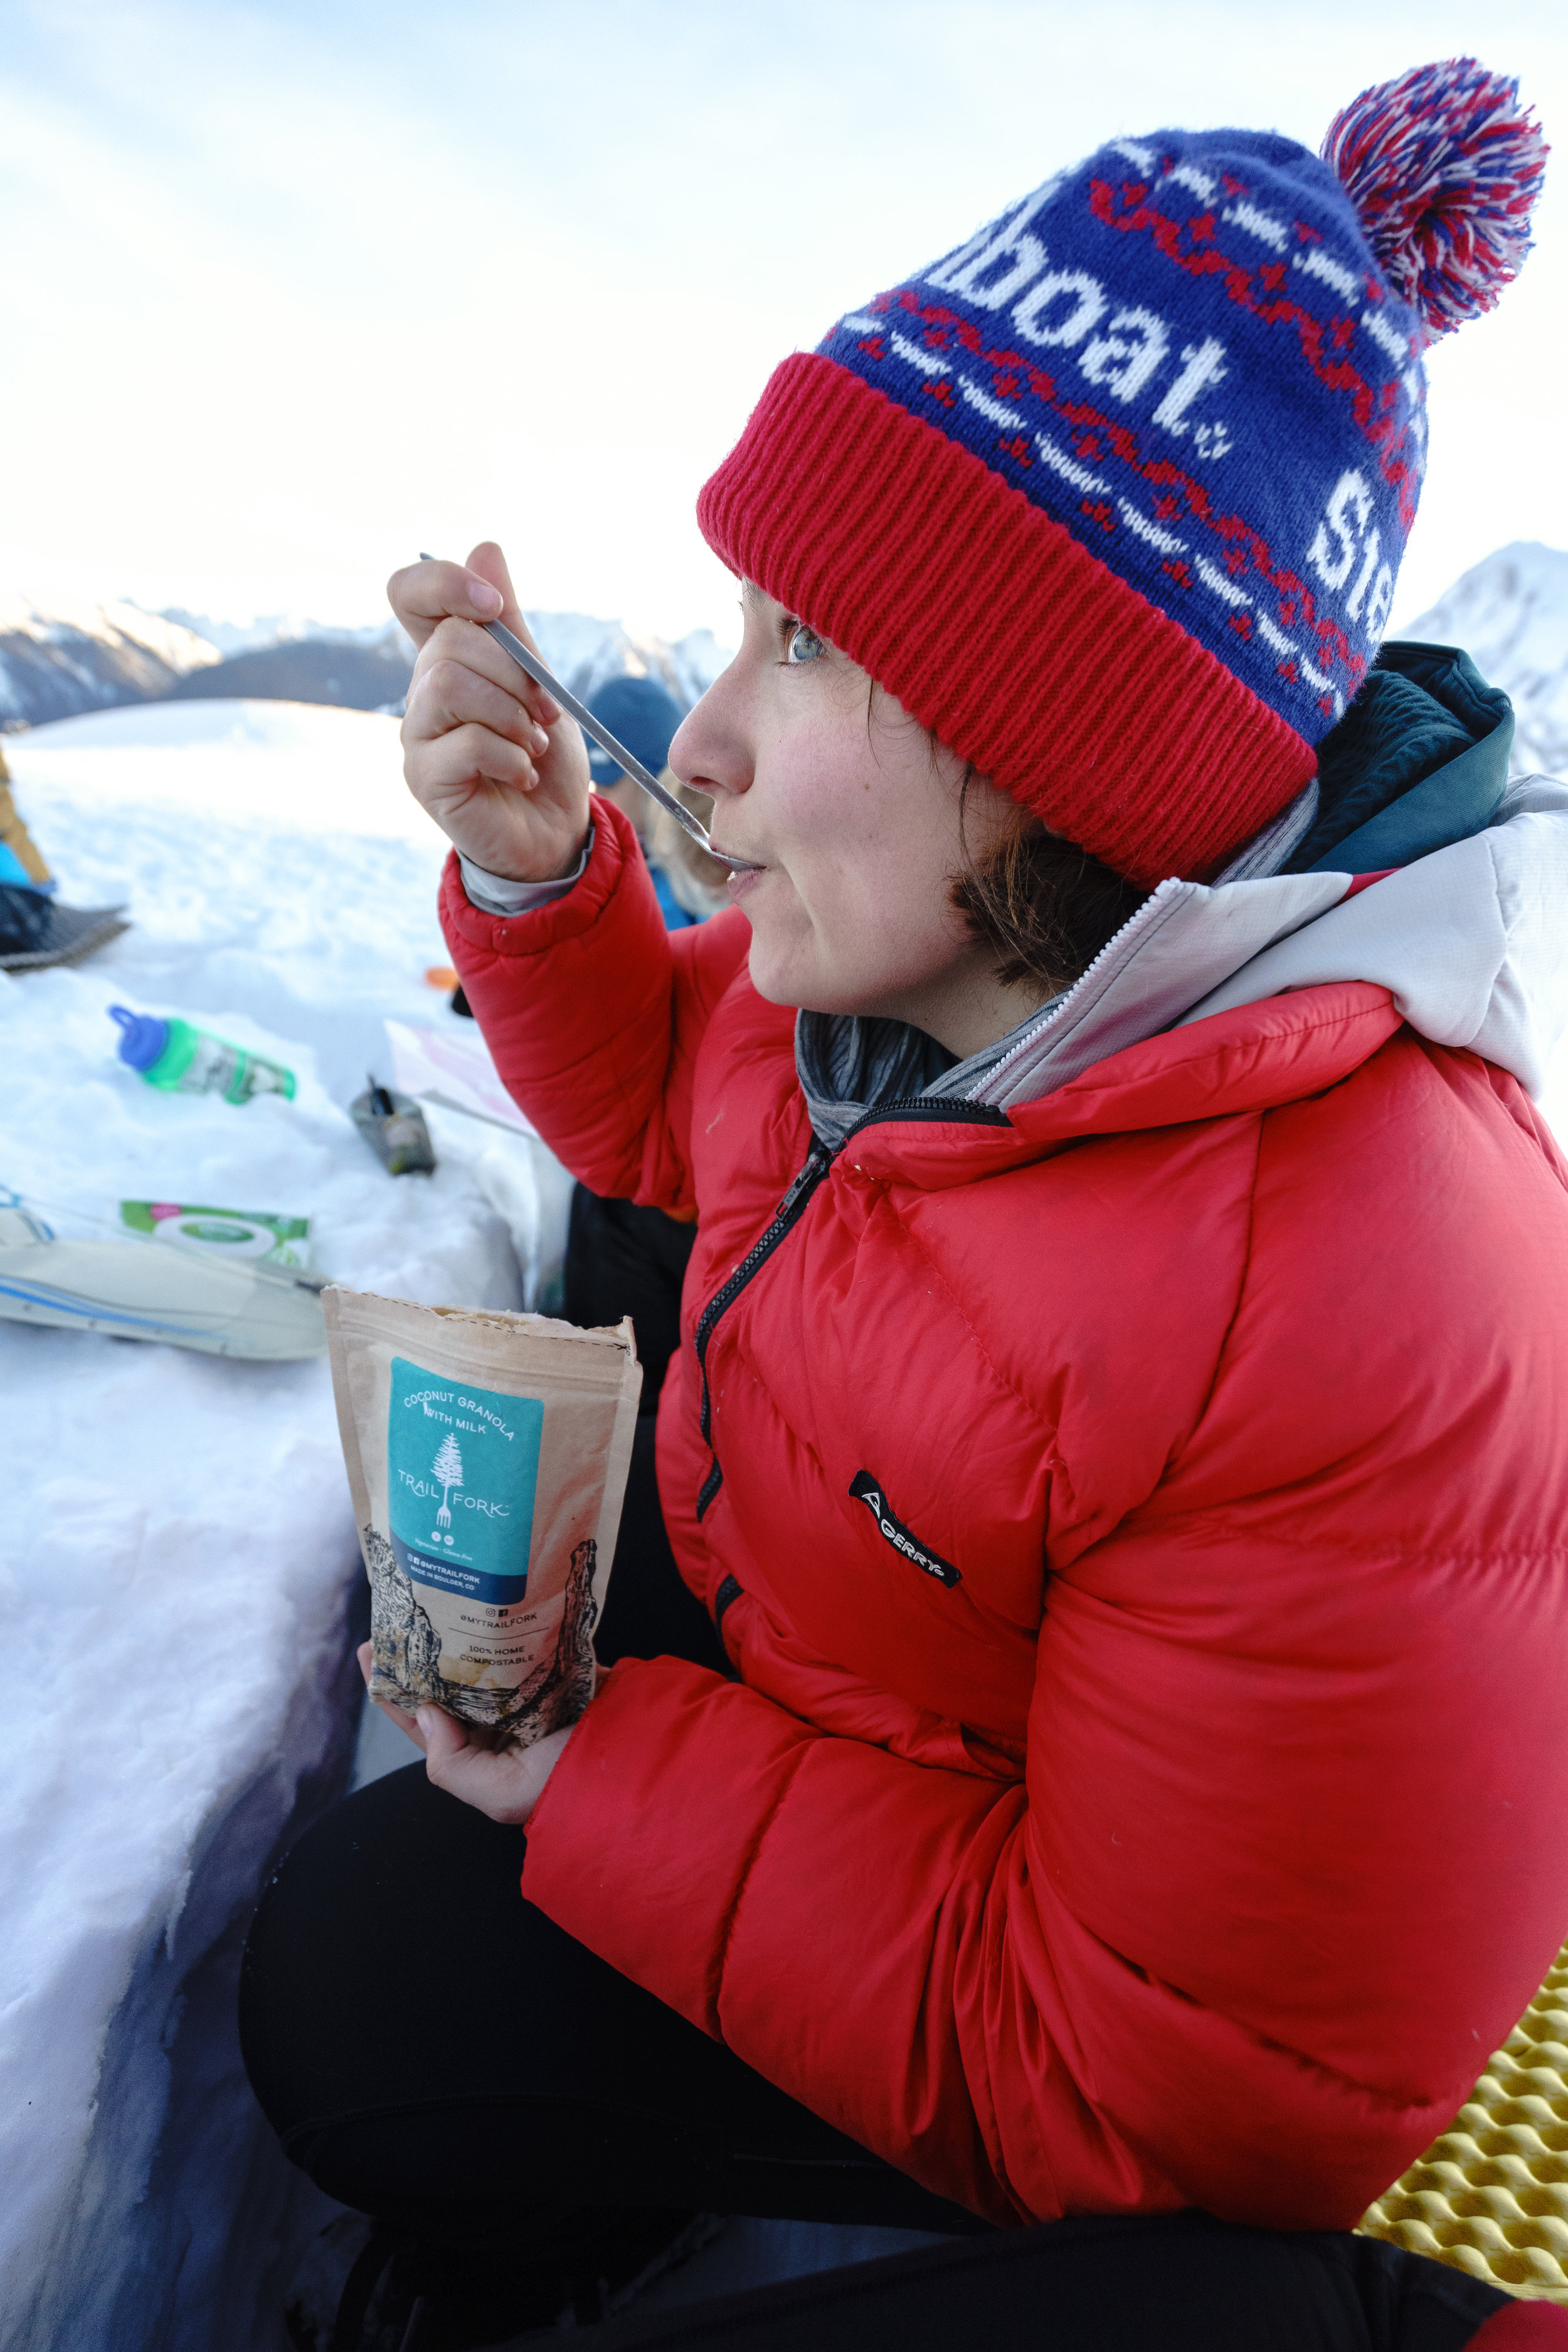 Warm food for breakfast is something I always look forward to winter camping!